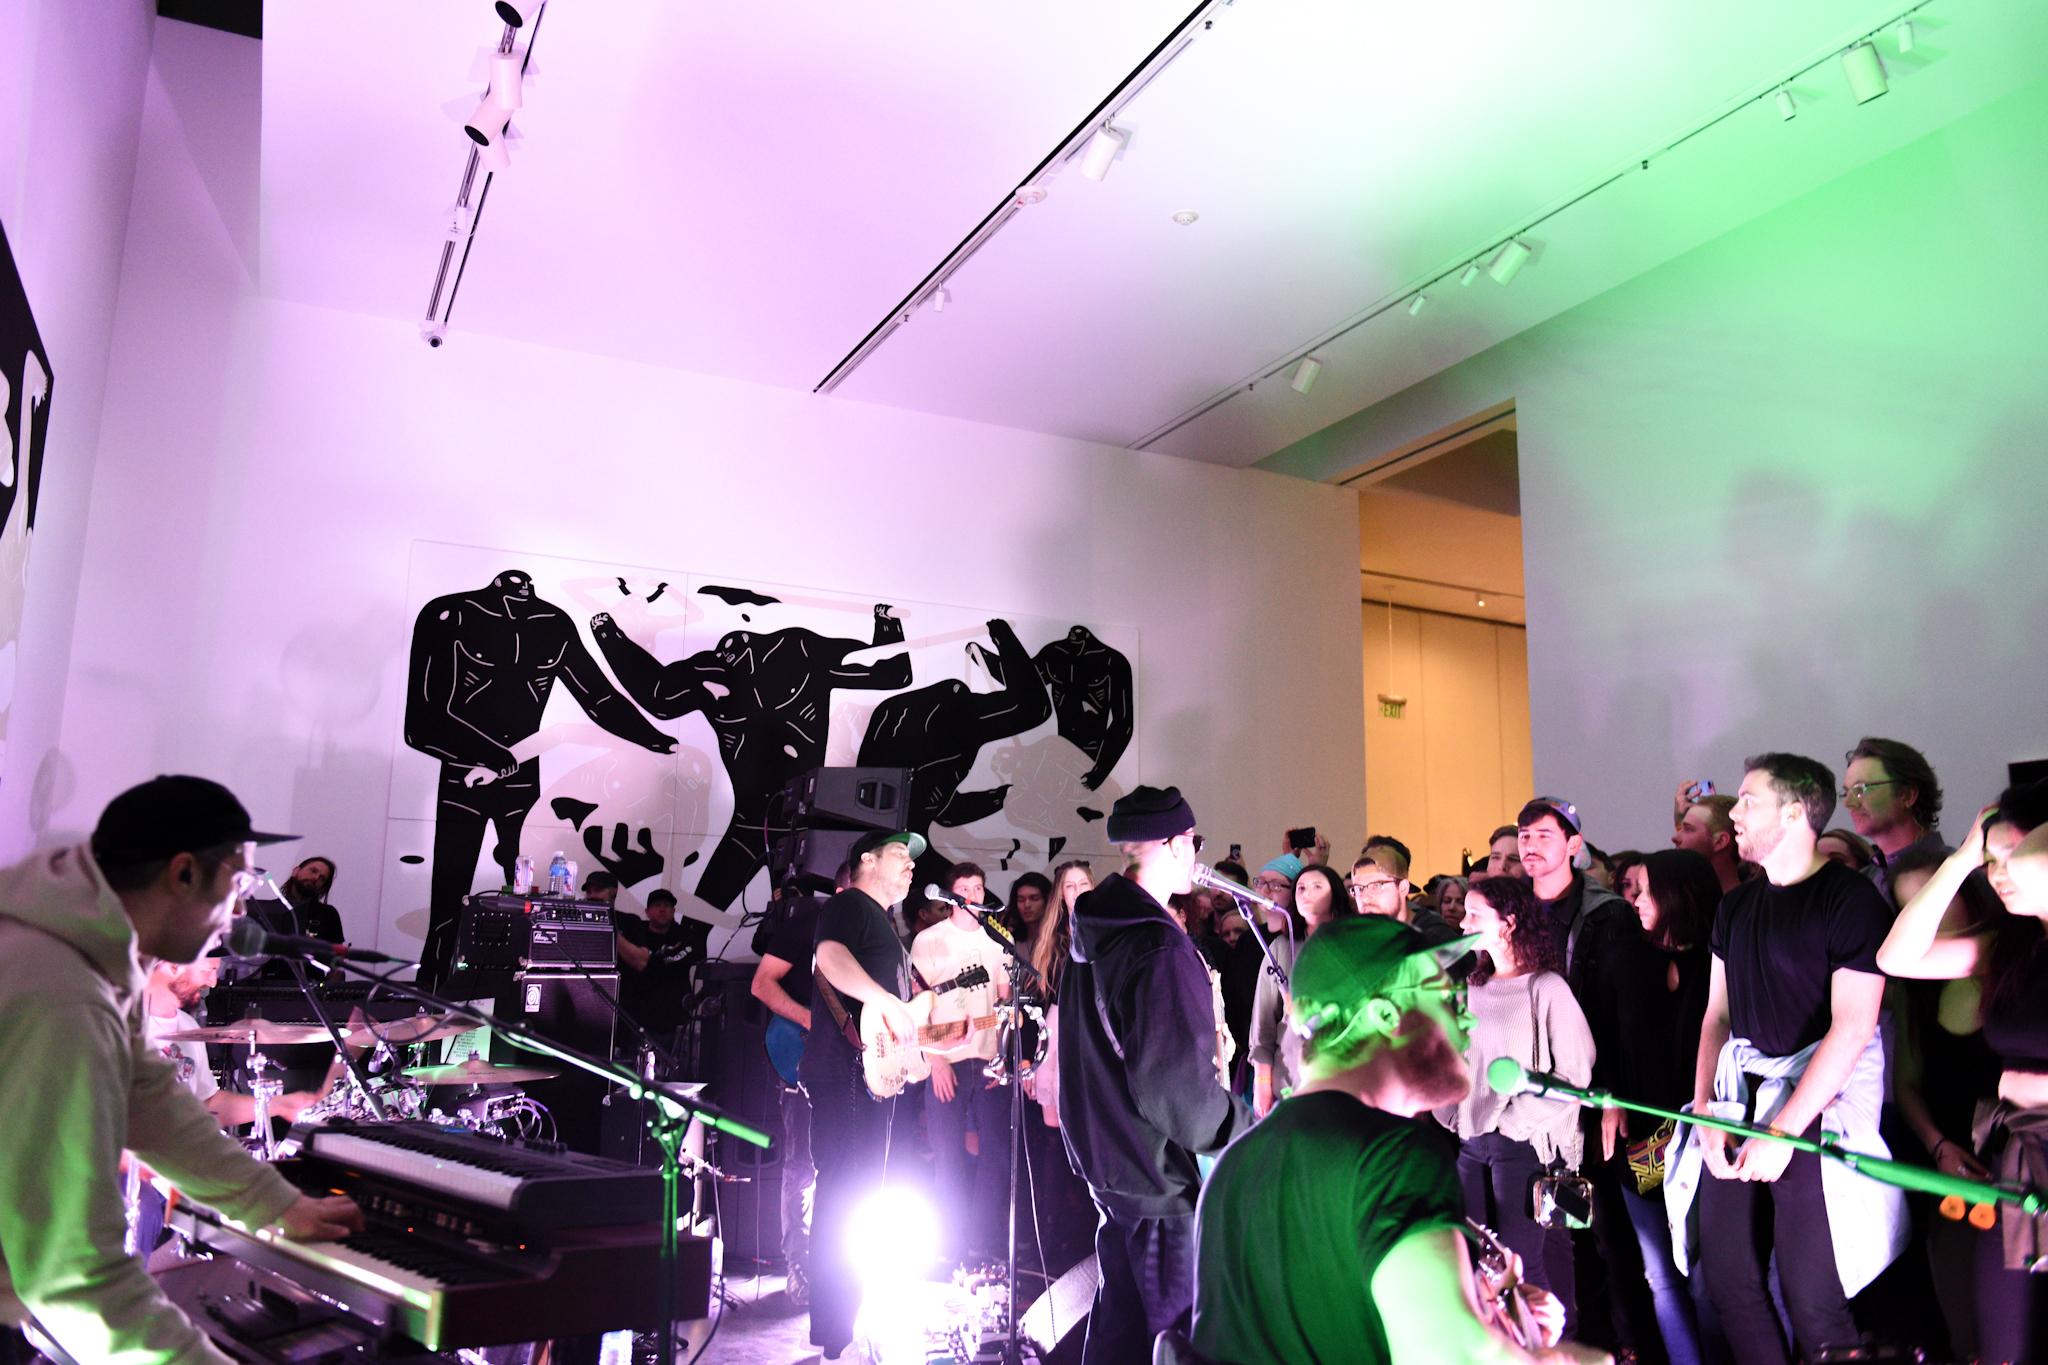 03162018_bruce_mca portugal the man cleon peterson_0047.jpg